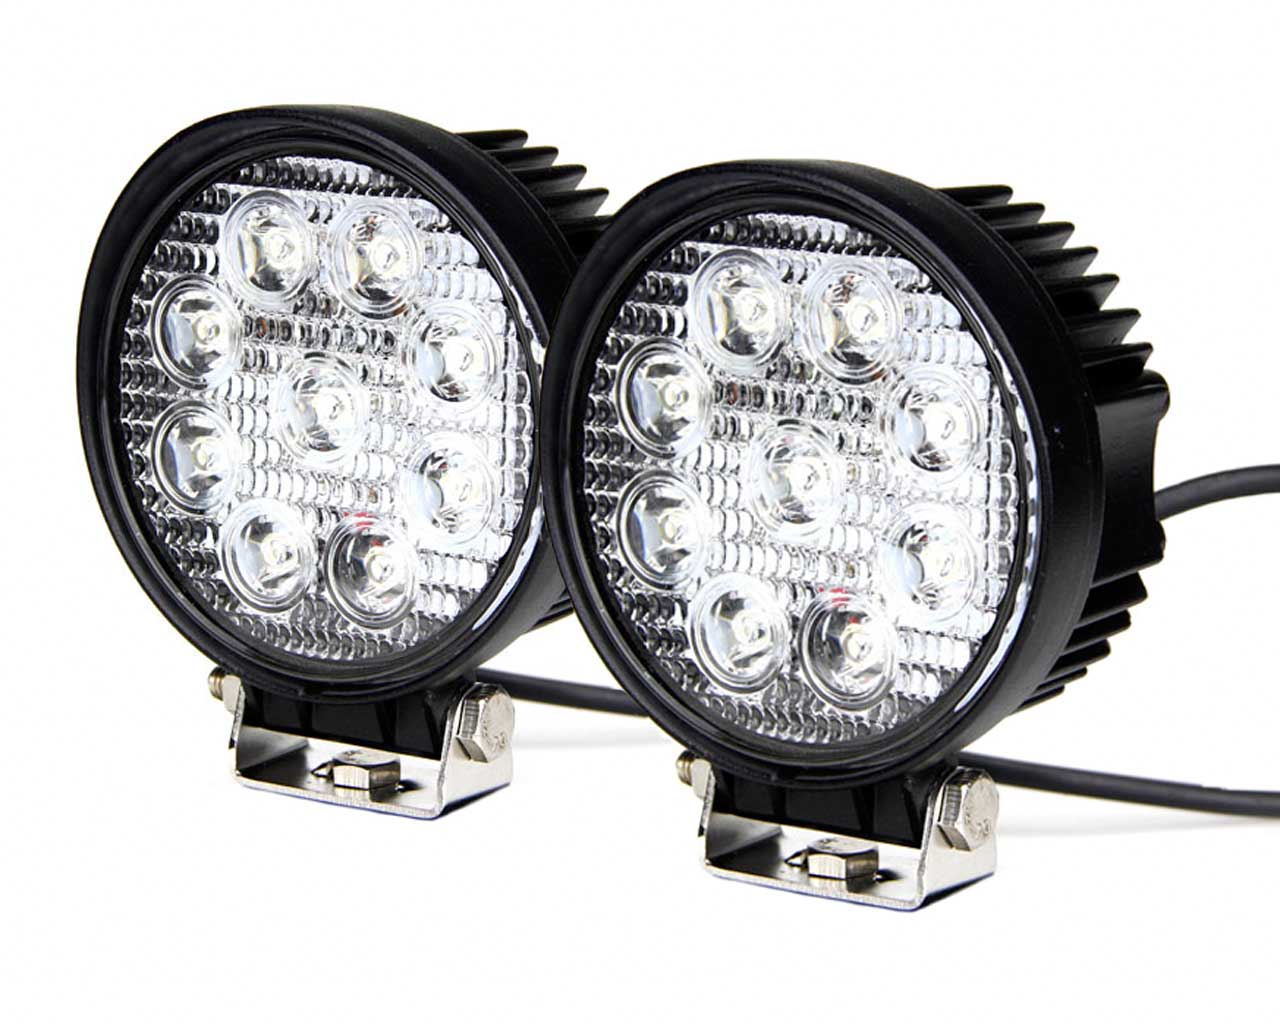 x tuff dp lights amazon utv ranger automotive off lamp com polaris atv inch lumen light round lighting work road led